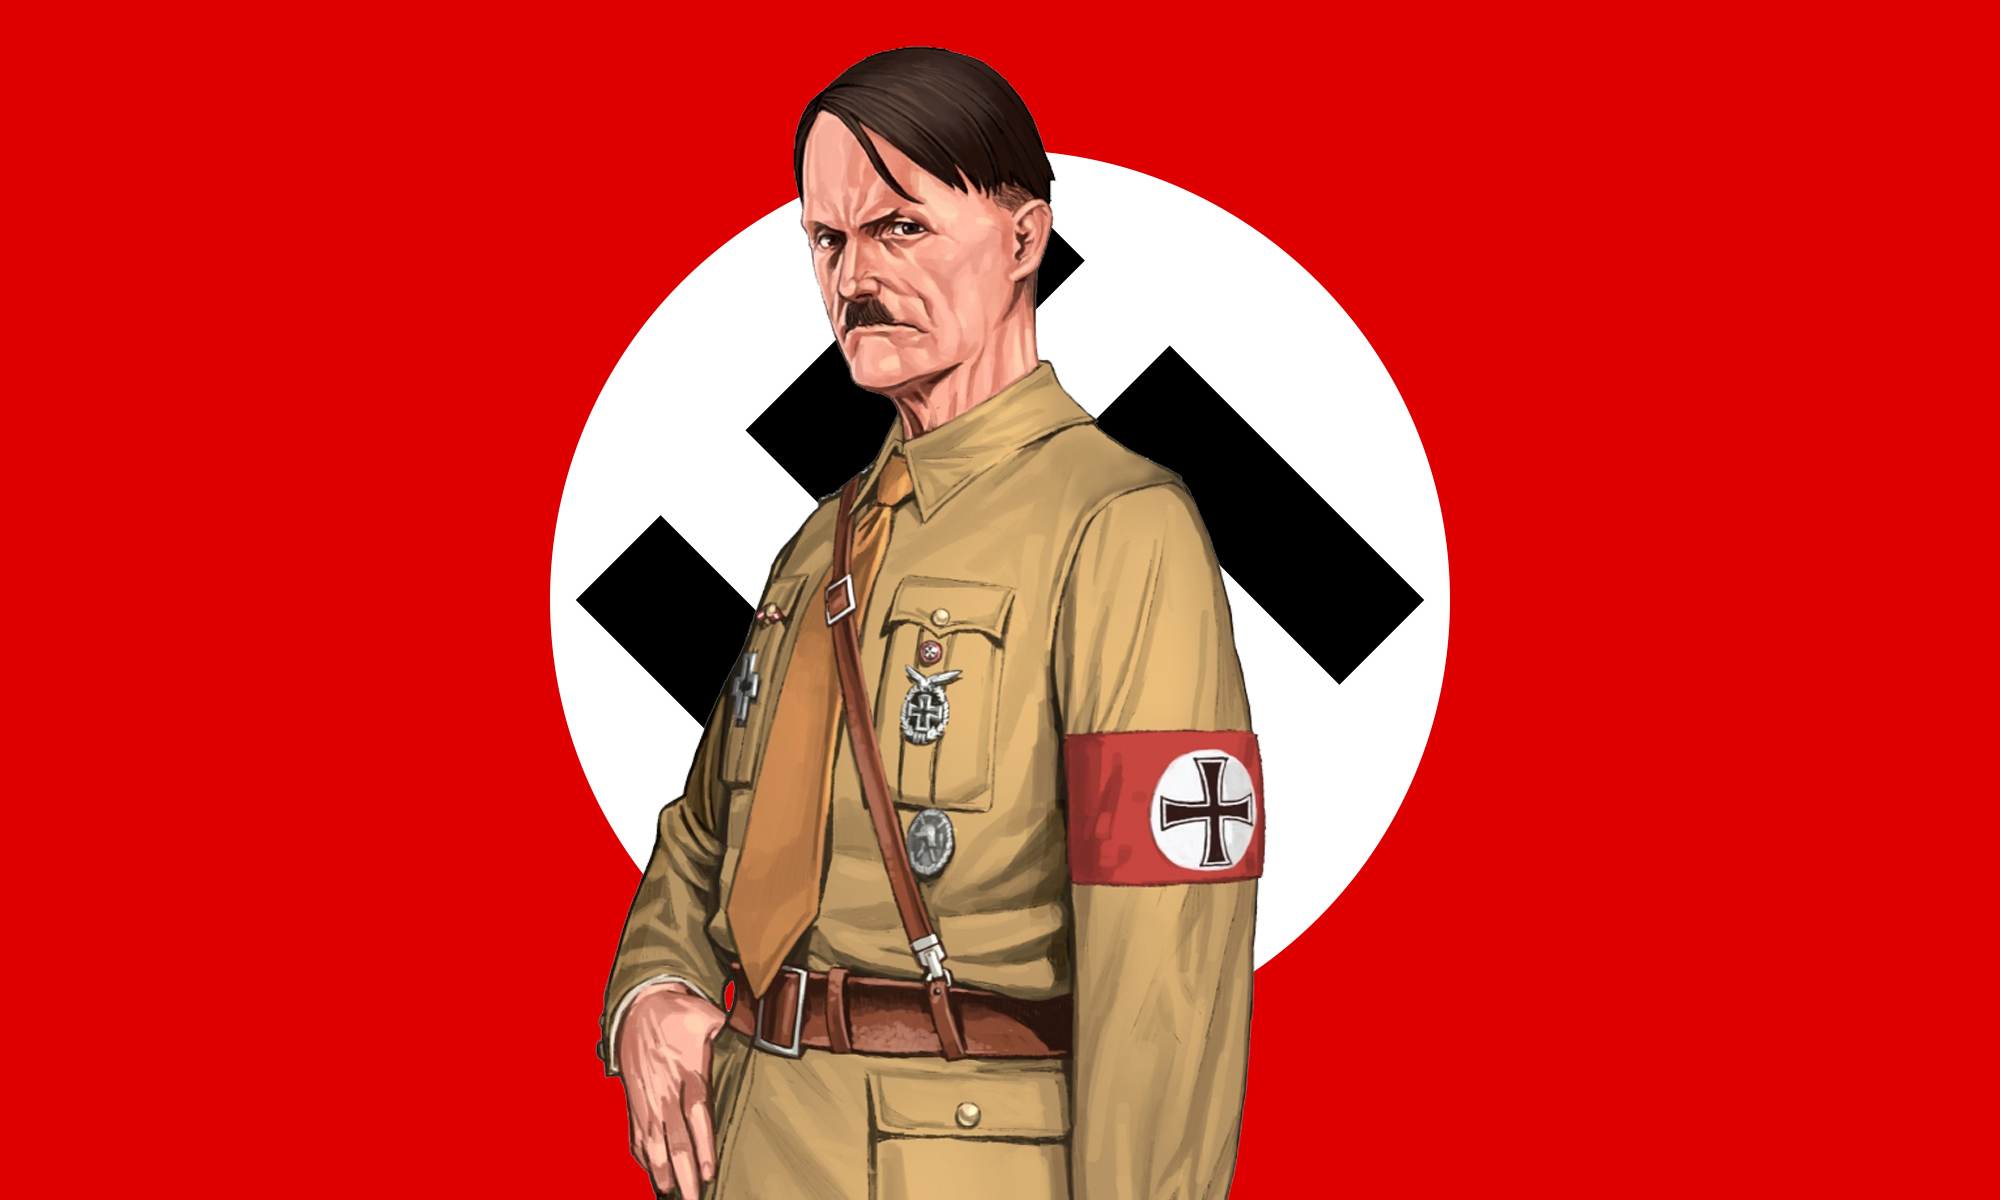 http://img3.wikia.nocookie.net/__cb20110829021548/ideas/images/2/25/Adolf_Hitler.jpg